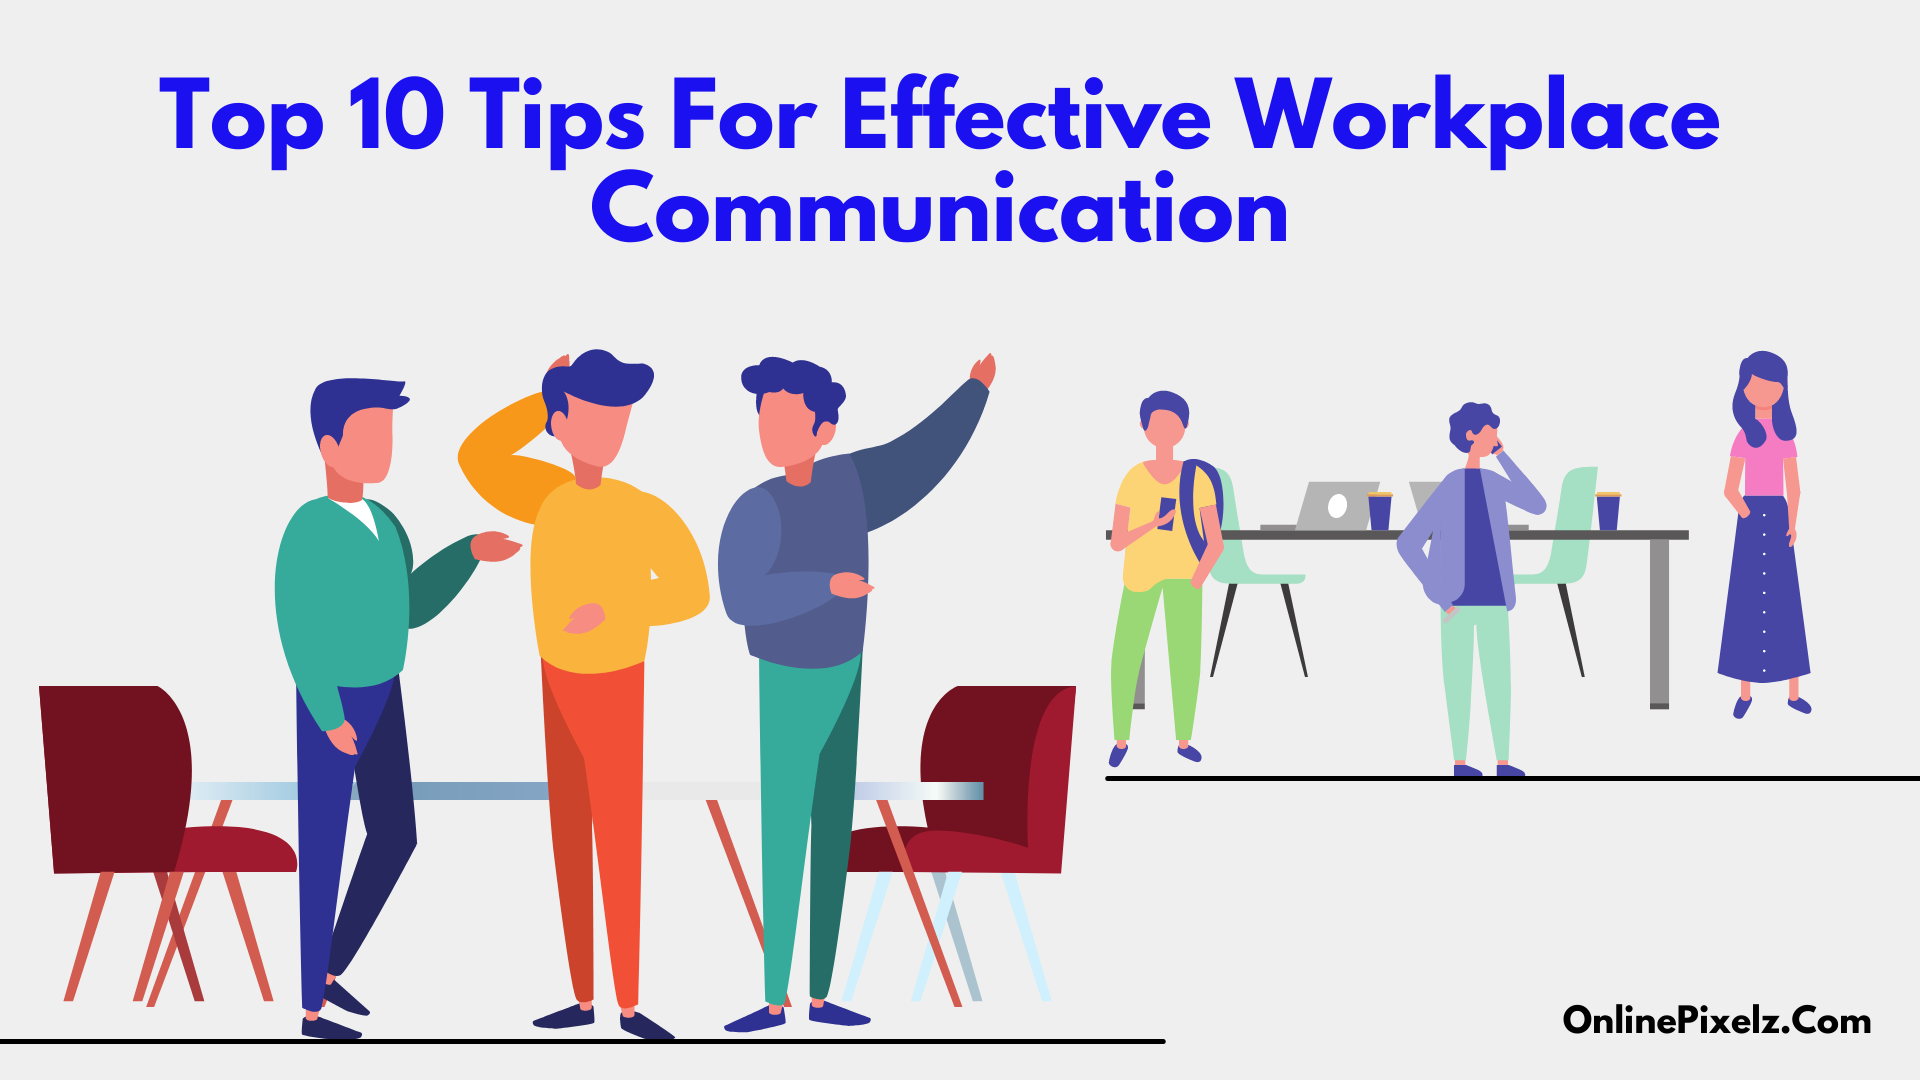 Tips For Effective Workplace Communication